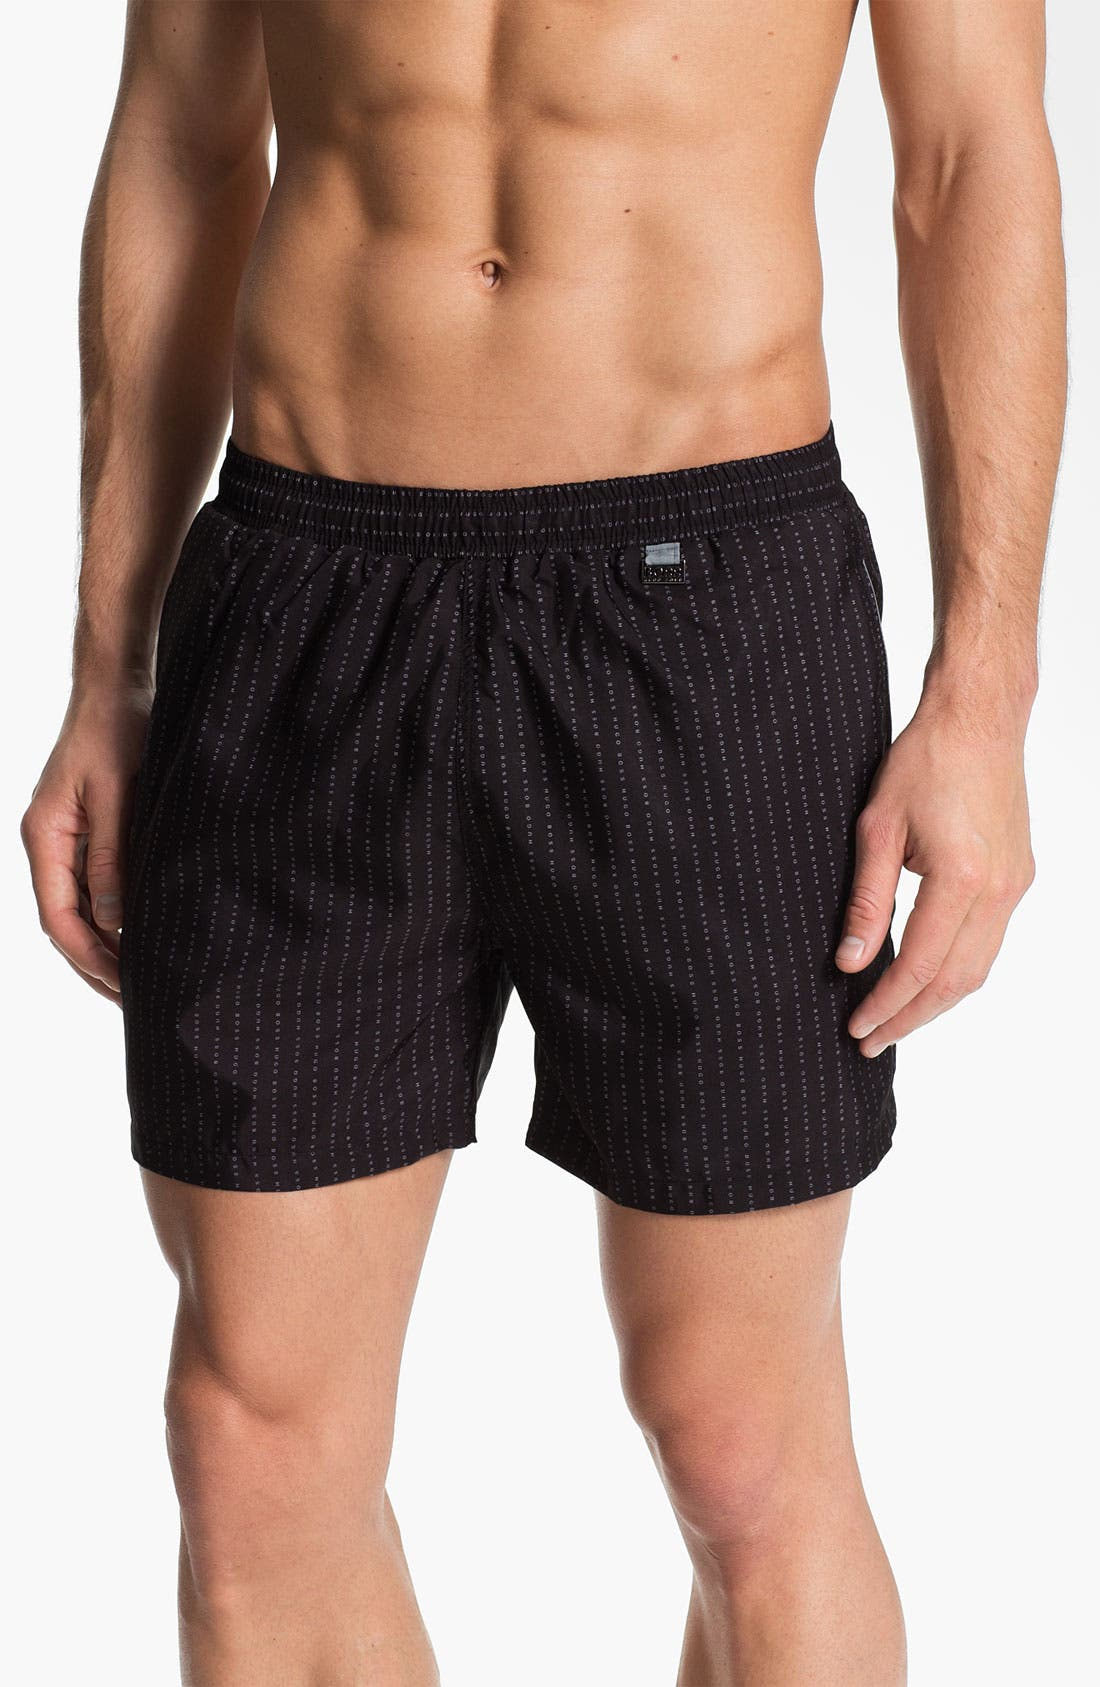 Alternate Image 1 Selected - BOSS Black 'Jewelfish' Swim Trunks